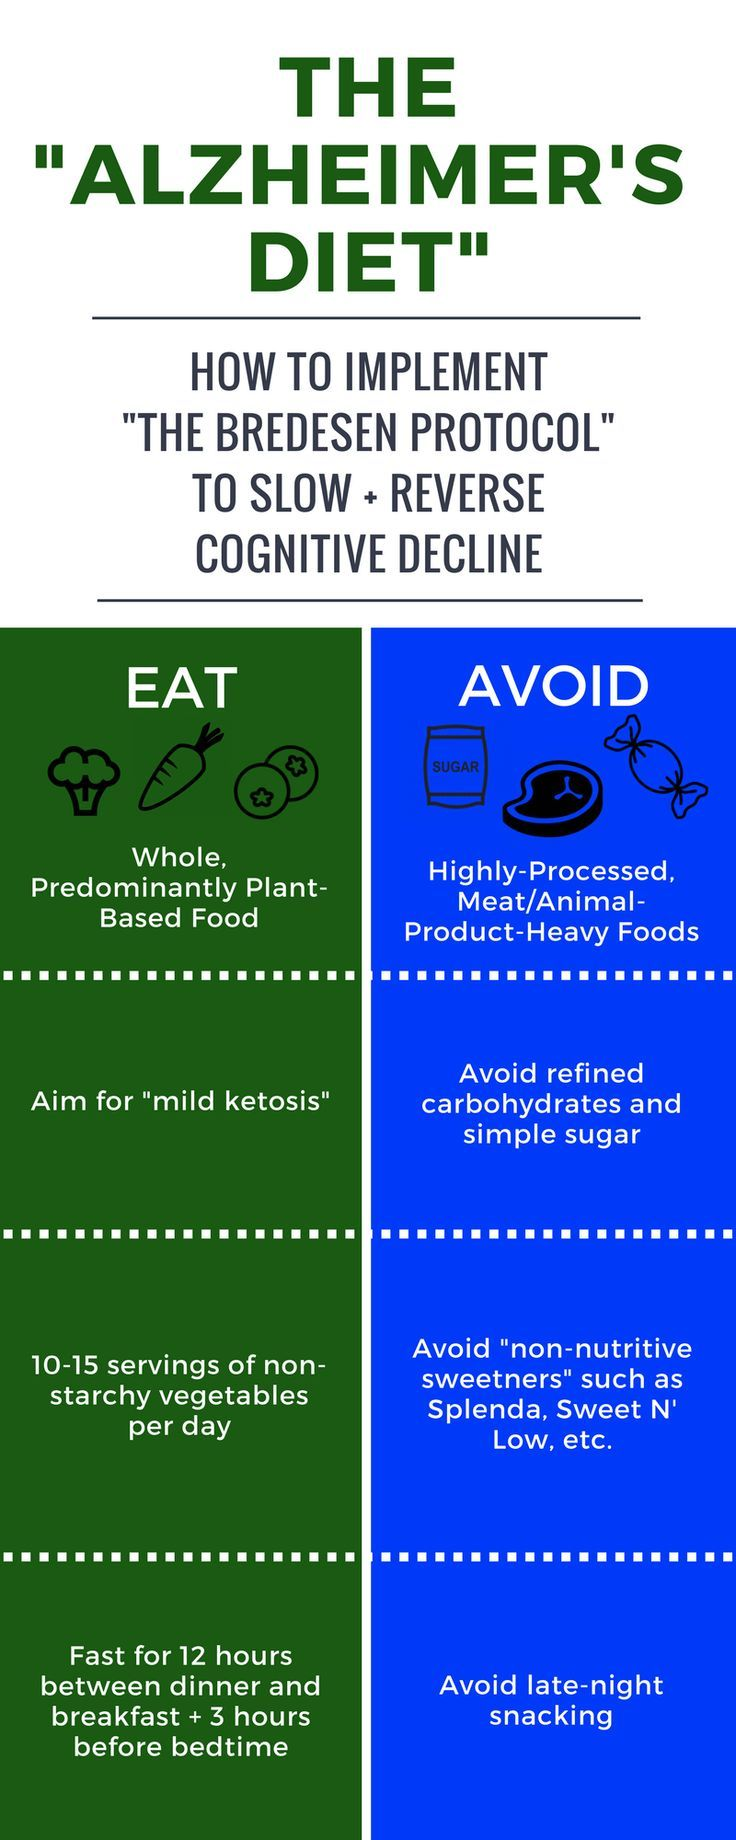 """An """"Alzheimer's Diet"""": How to Implement the Bredesen Protocol to Prevent + Treat Cognitive Decline"""